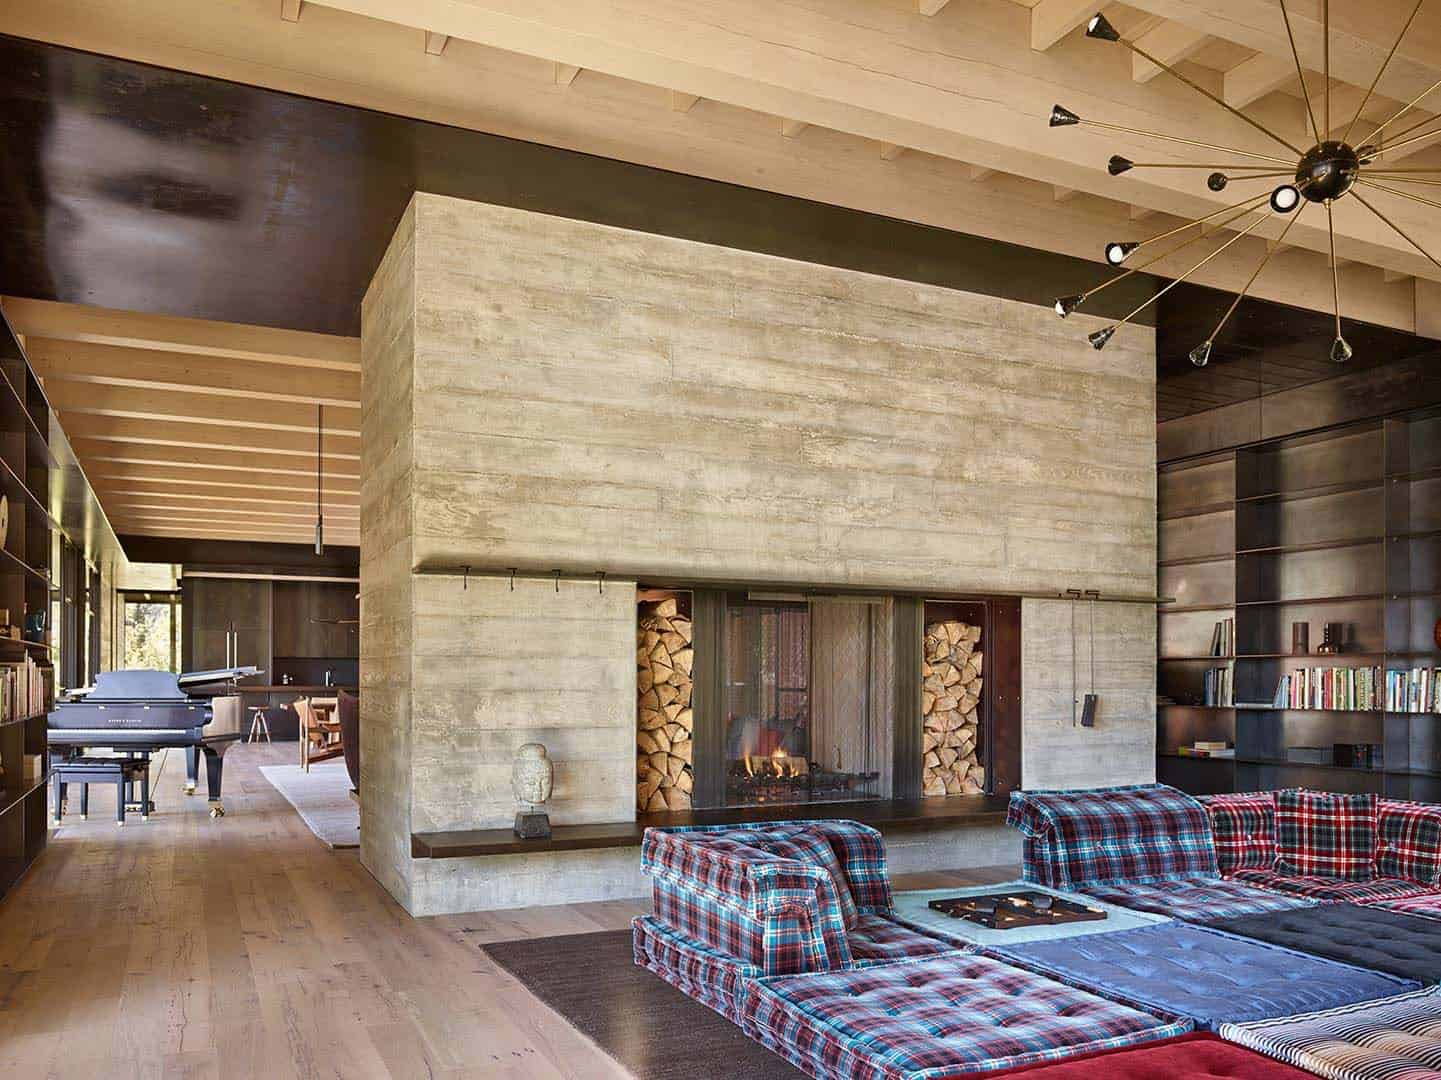 Mountain Ski Retreat-Olson Kundig Architects-26-1 Kindesign